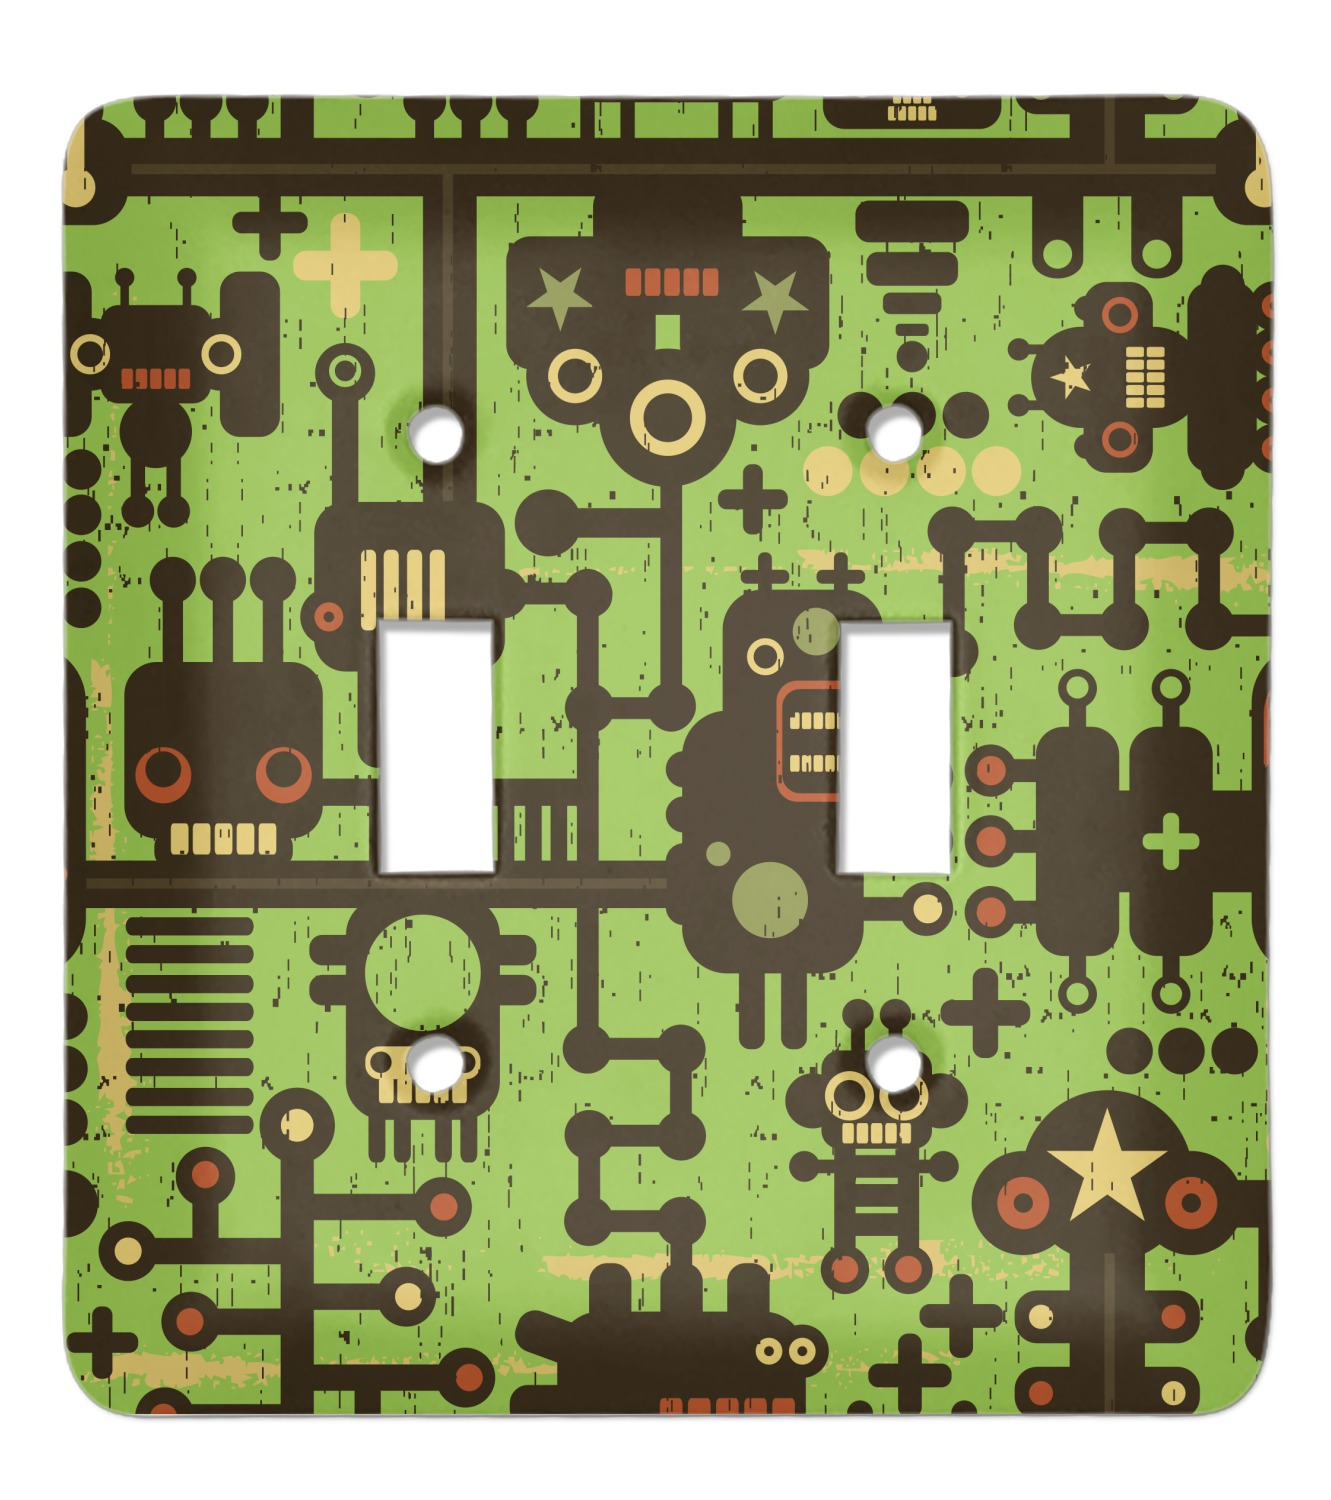 Industrial Robot 1 Light Switch Cover (2 Toggle Plate